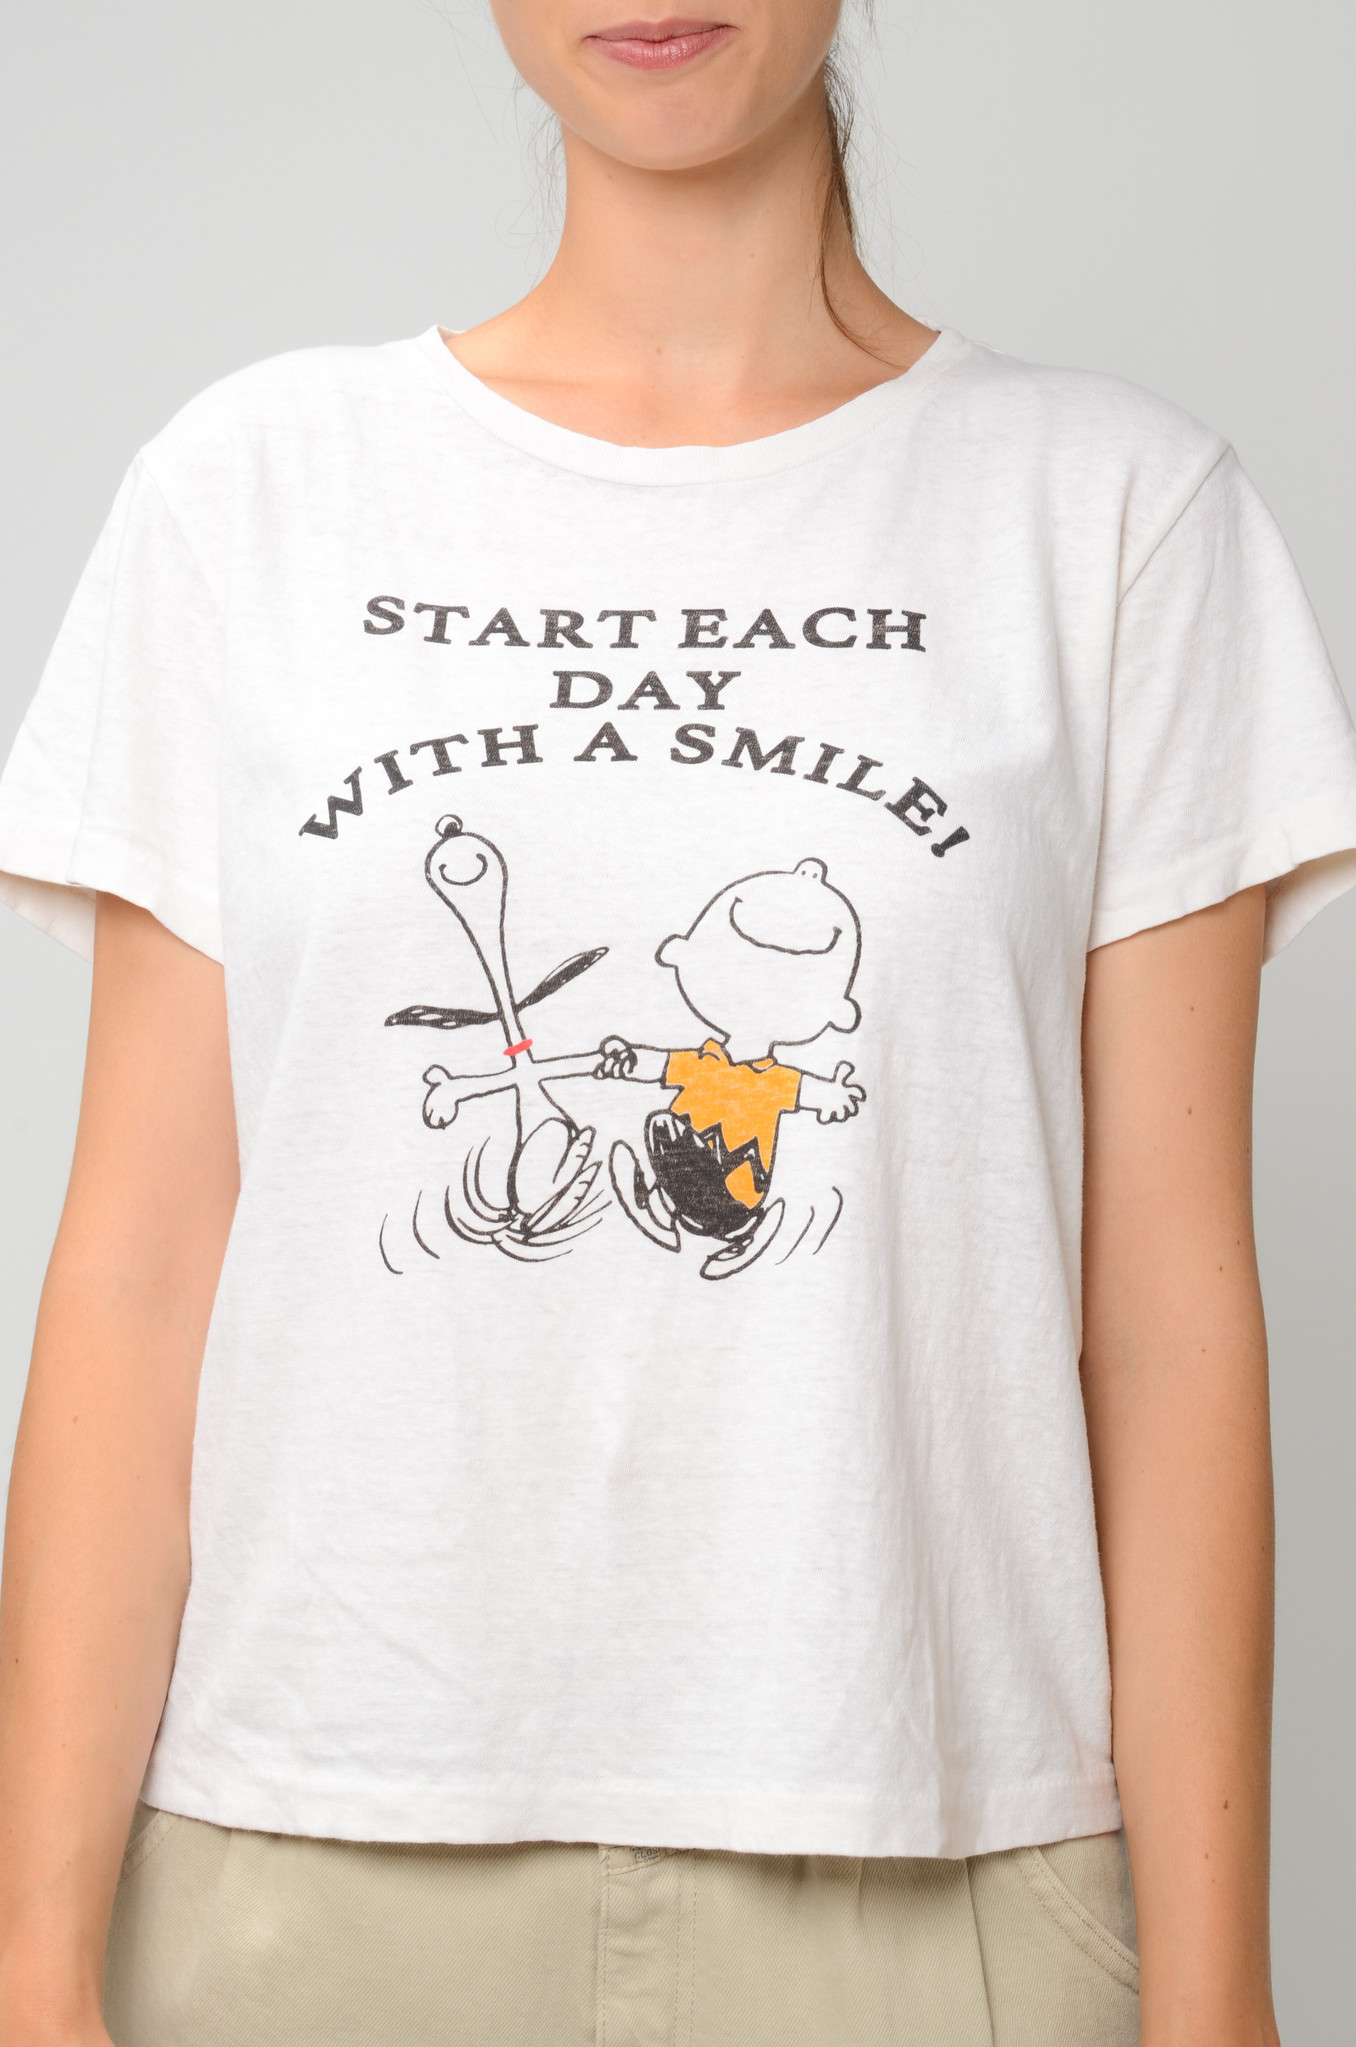 CLASSIC TEE WITH A SMILE-1